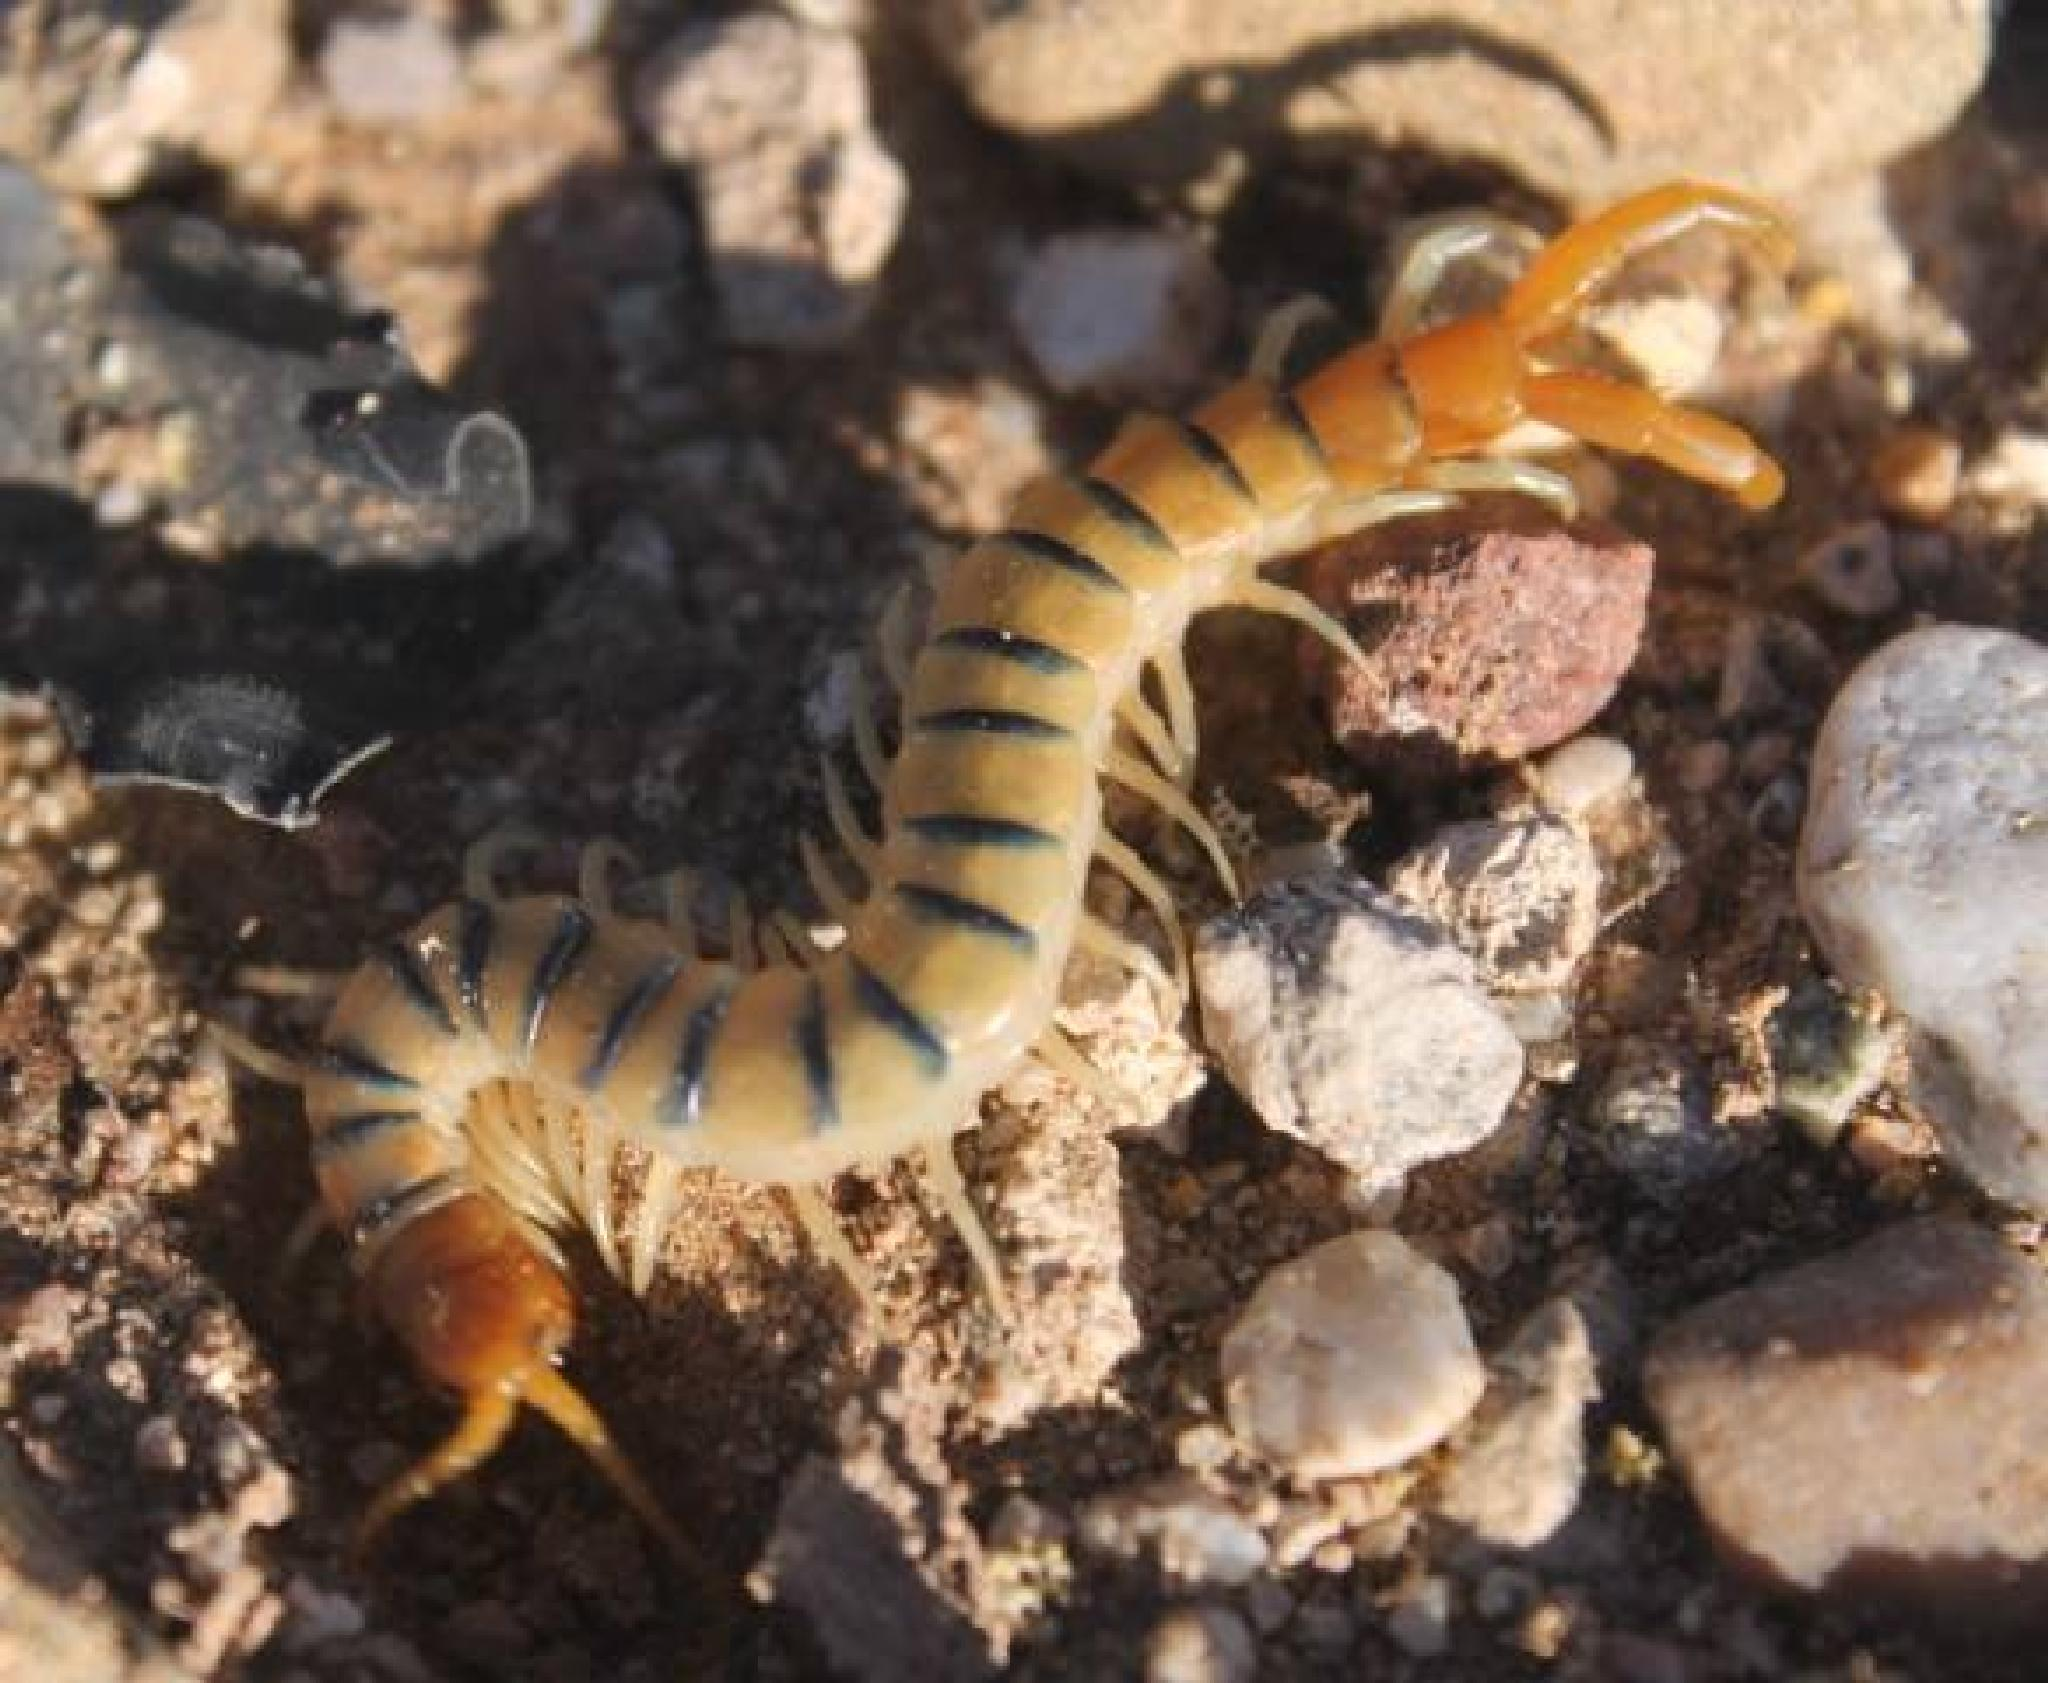 Small Giant Centipede  by clayton.palmer.188